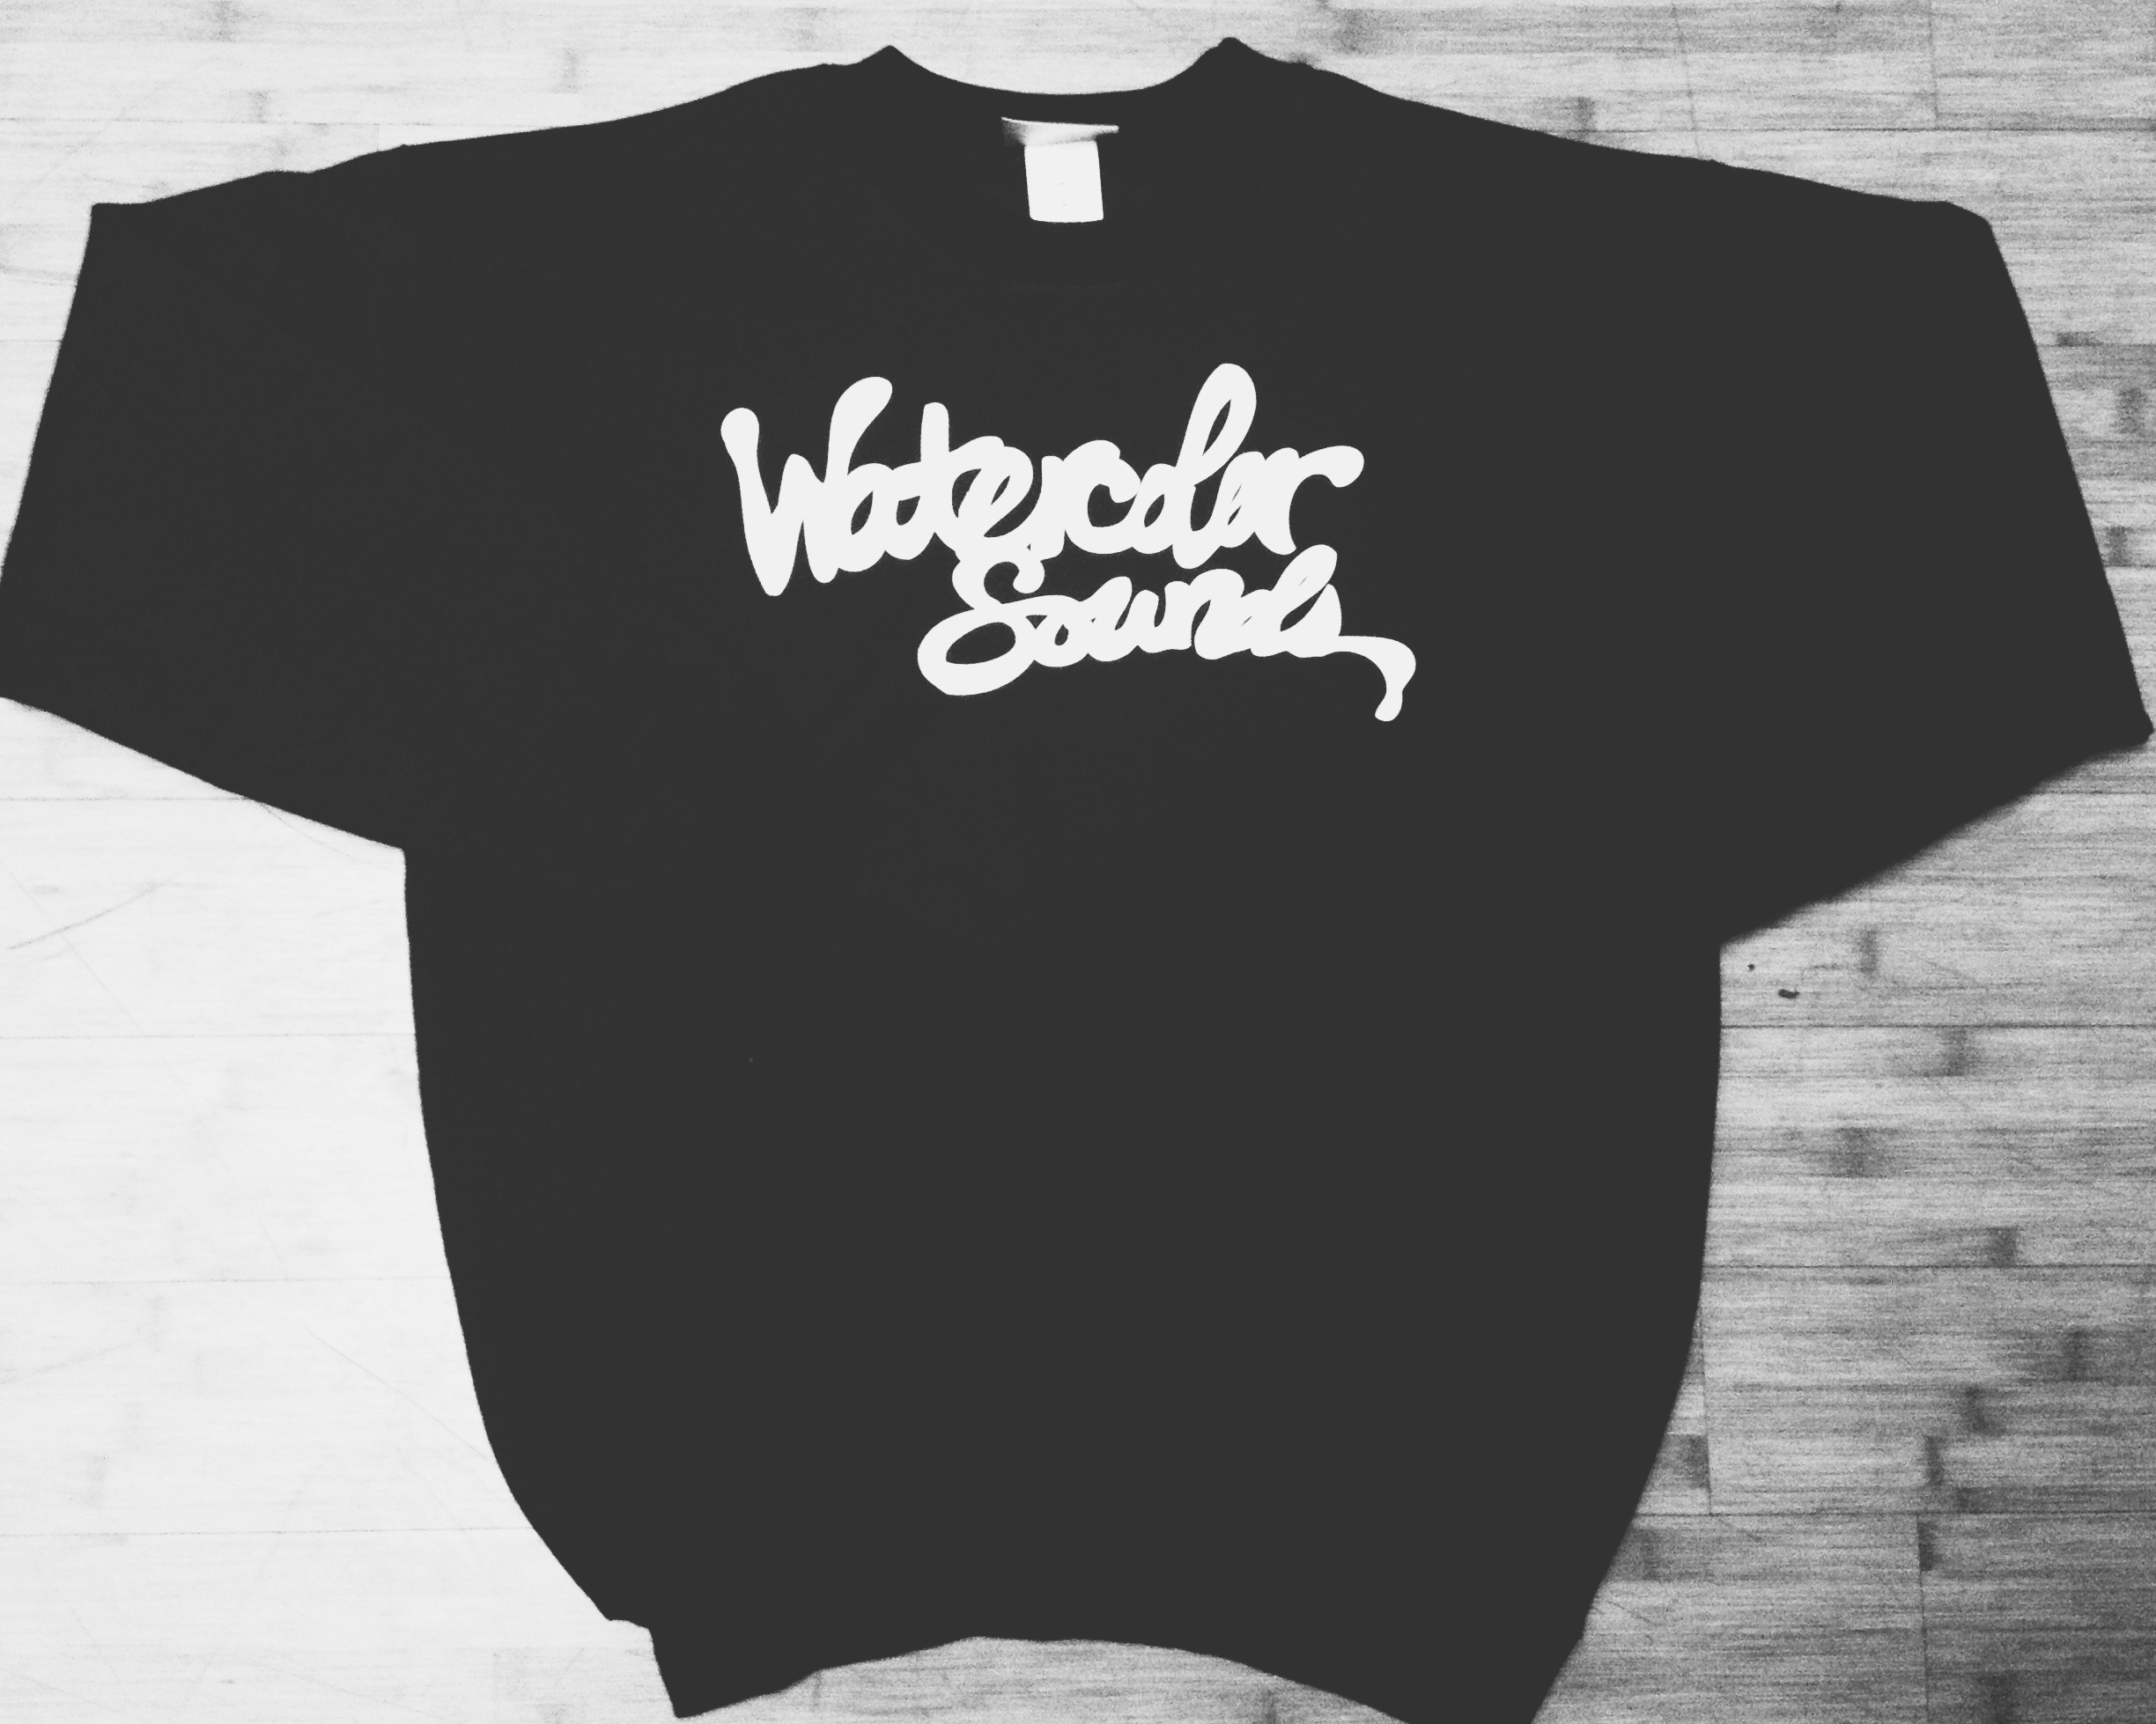 WaterColor Sounds Music Group   (Crew Neck/Black/White)